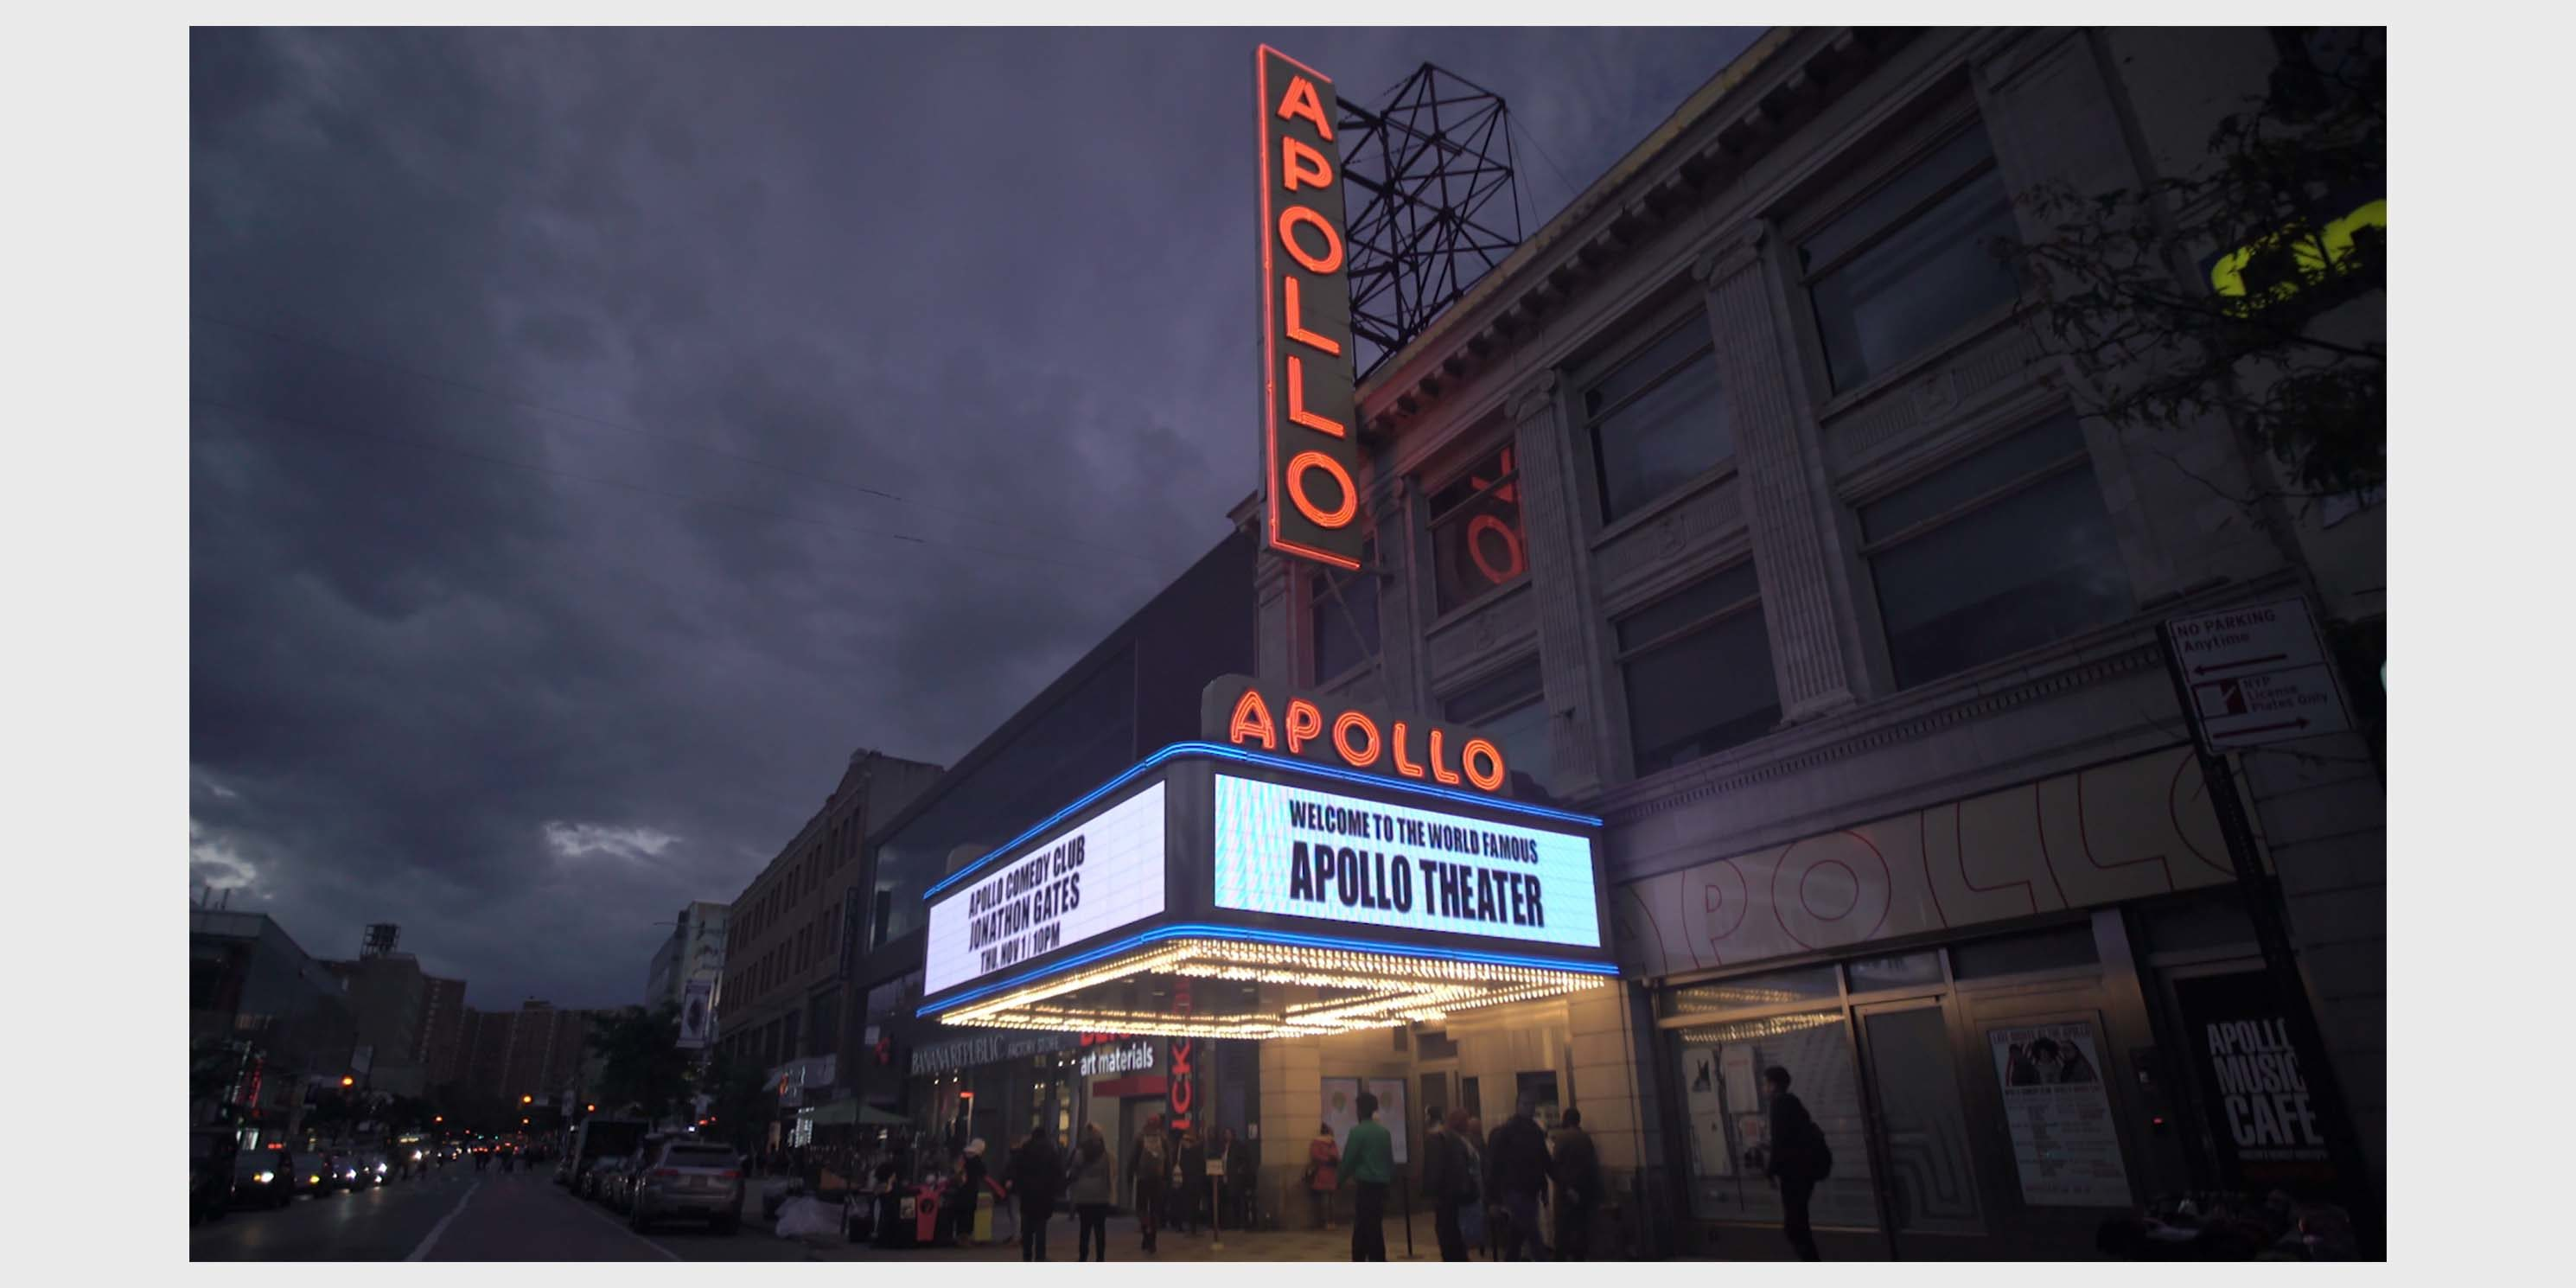 exterior of the Apollo Theater at night